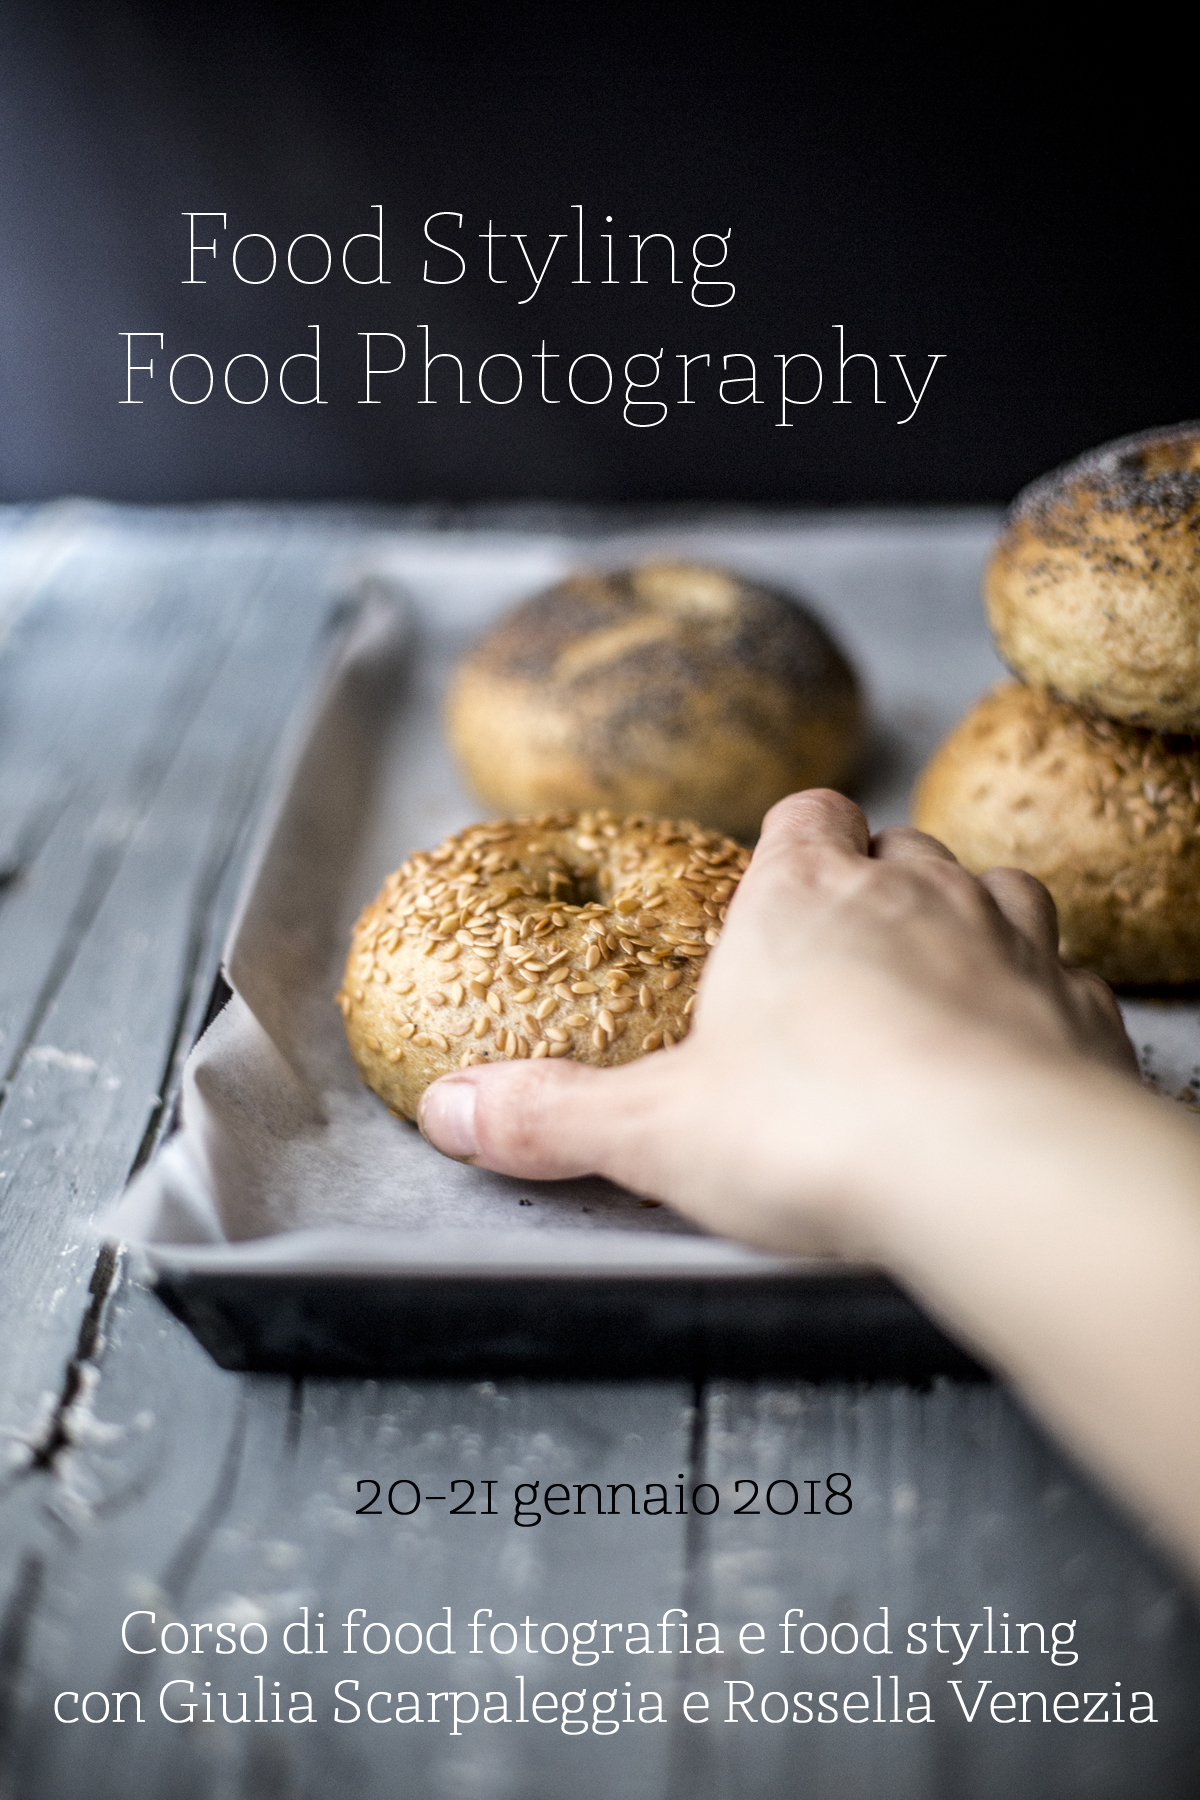 Workshop di food fotografia e food styling con Giulia Scarpaleggia e Rossella Venezia